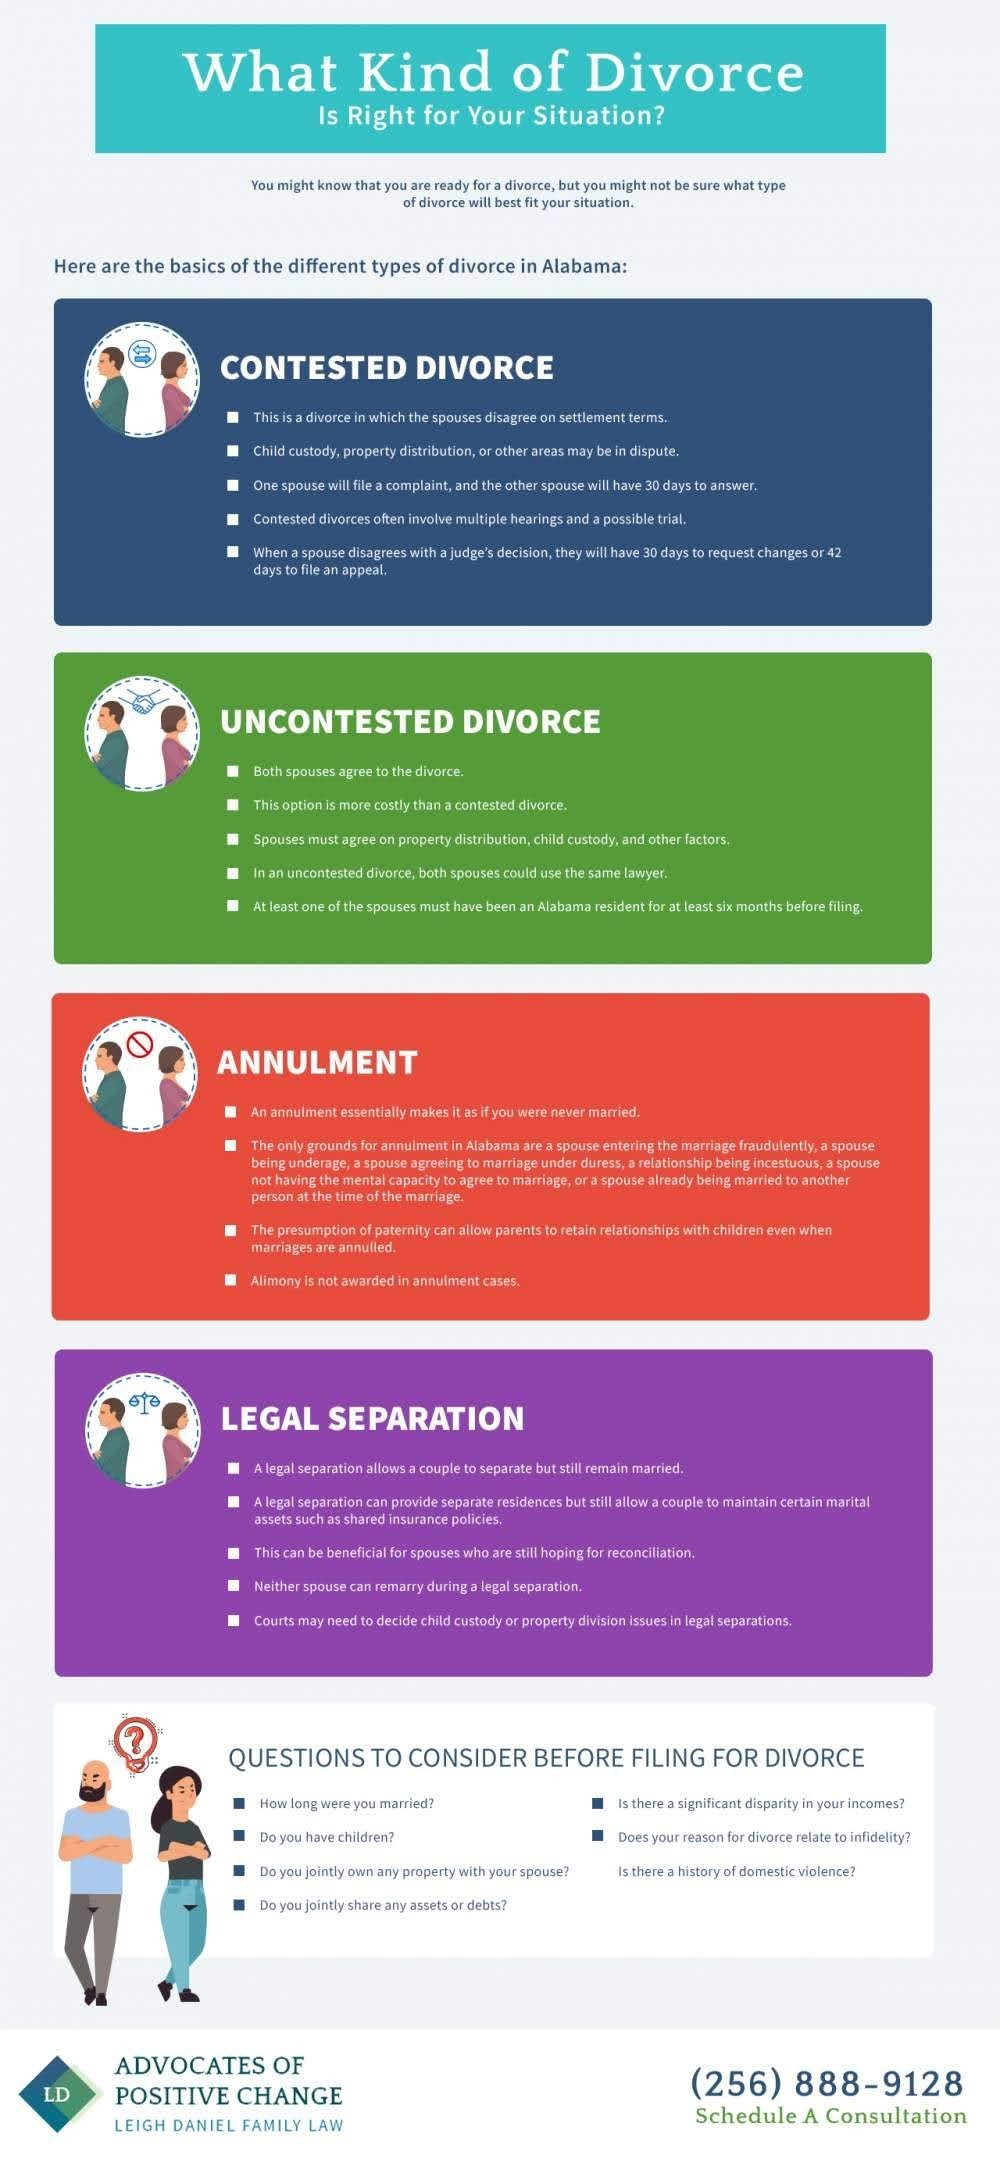 What Kind of Divorce Is Right for Your Situation? #infographic